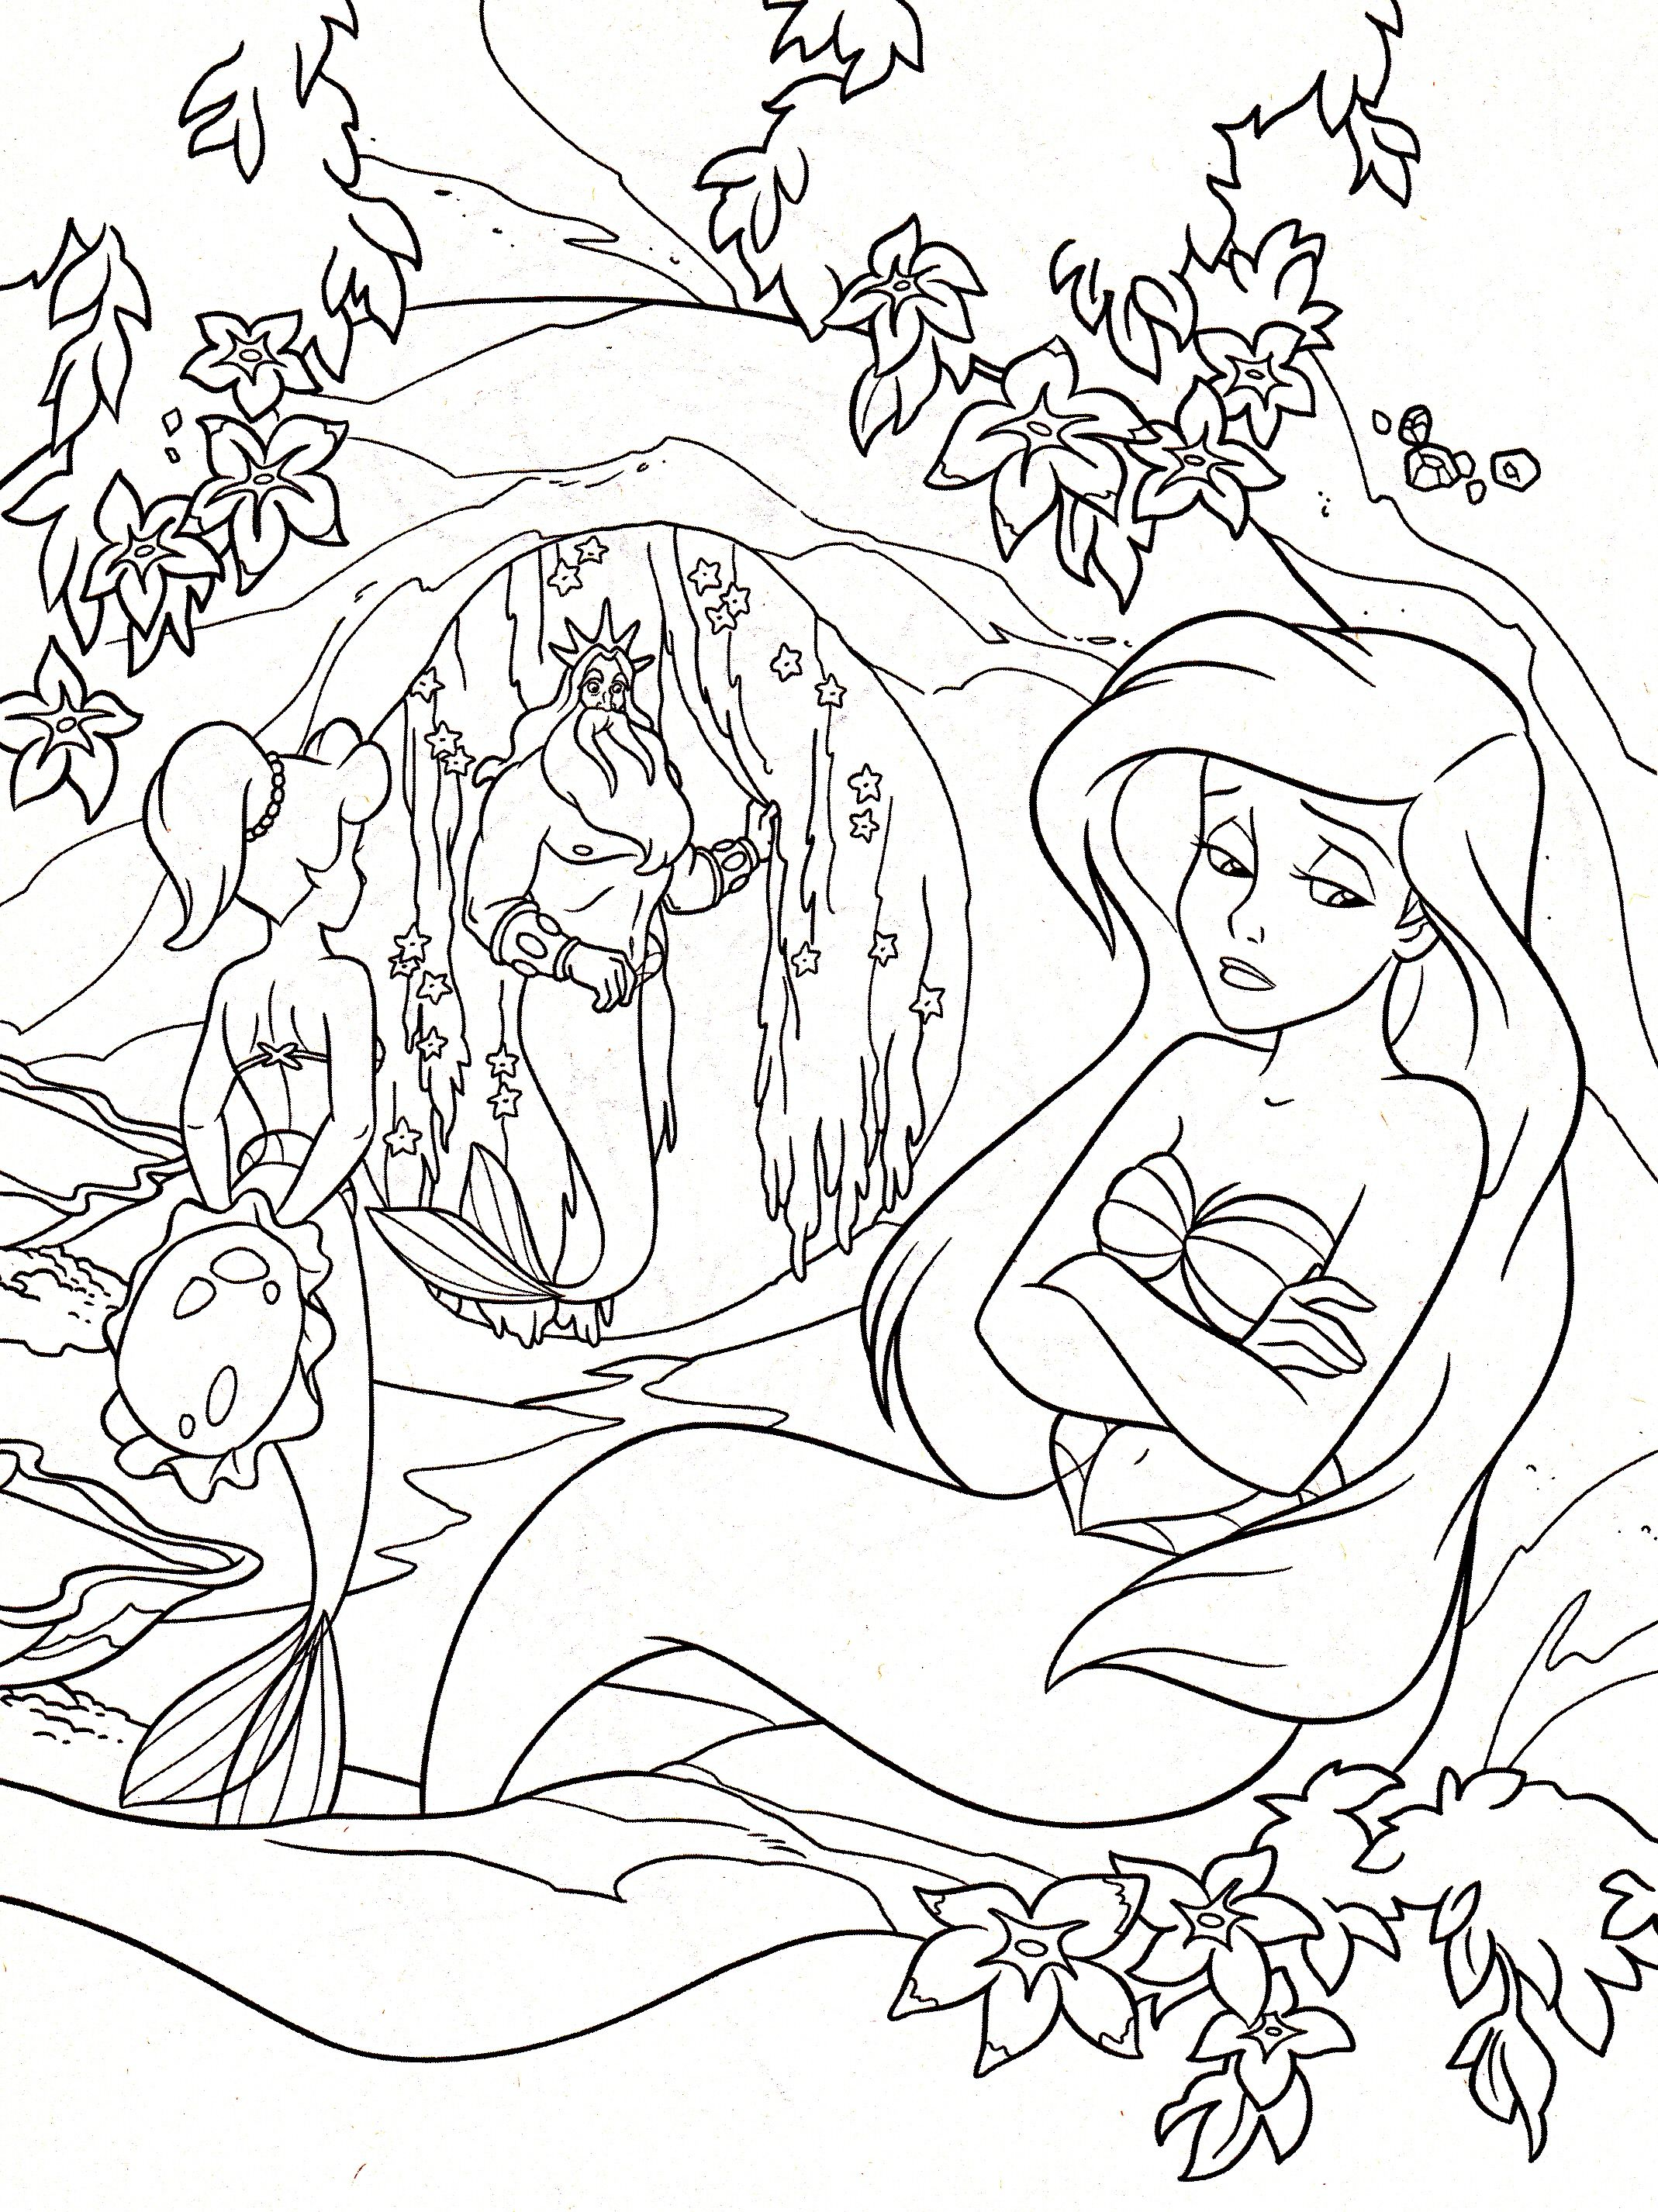 Disney Coloring Pages Is A Web That Contains A Collection Of Coloring Pages Such As Ariel Coloring Pages Princess Coloring Pages Disney Princess Coloring Pages